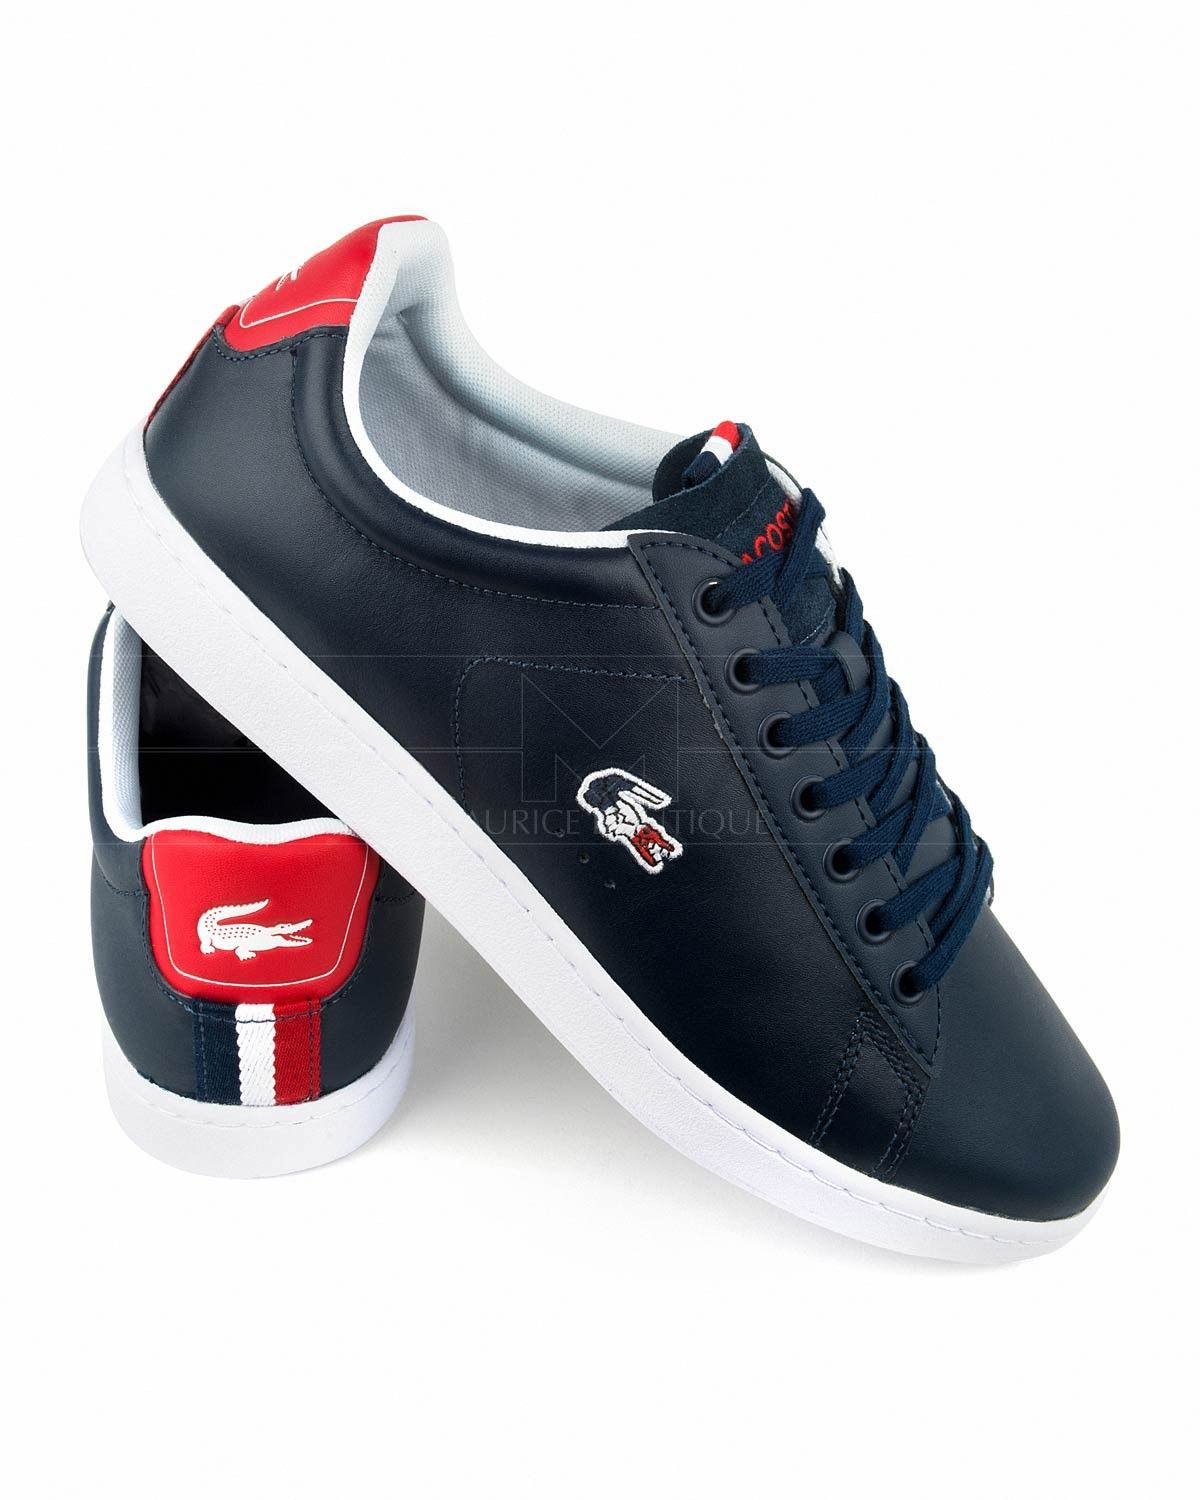 Lacoste Shoes Navy Blue Lacoste Carnaby Evo Lacoste Shoes Sneakers Men Fashion Dress Shoes Men